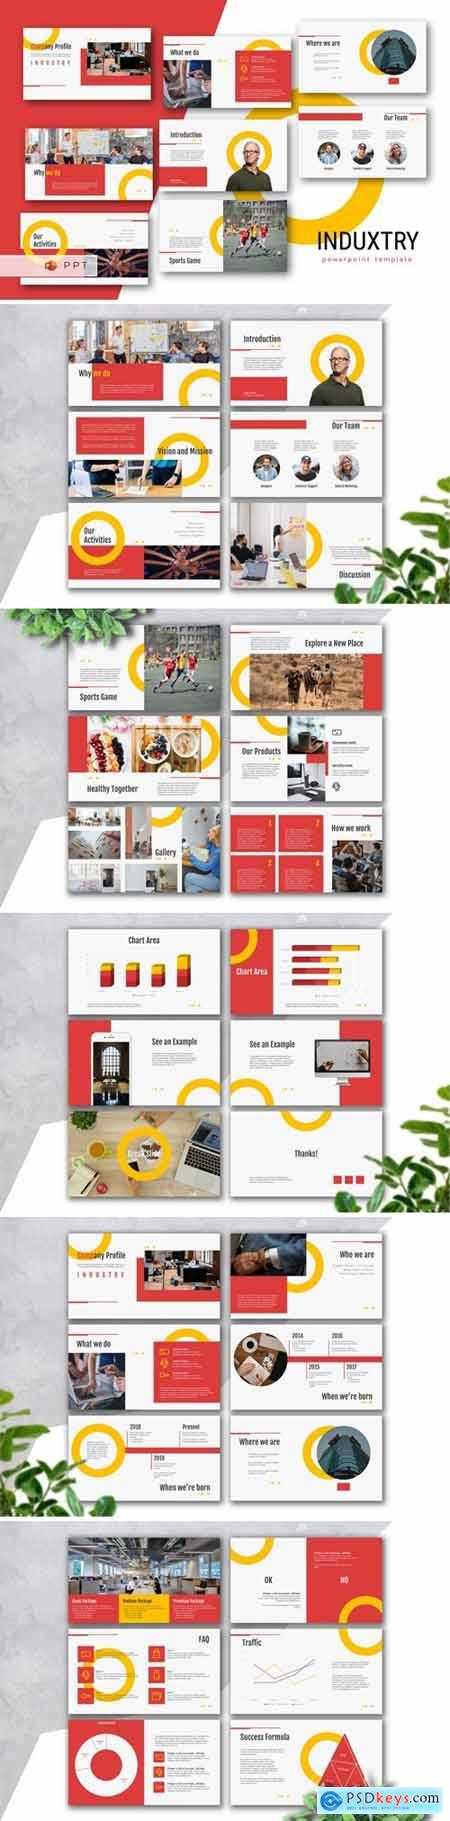 INDUXTRY - Company Profile Powerpoint, Keynote and Google Slides Templates